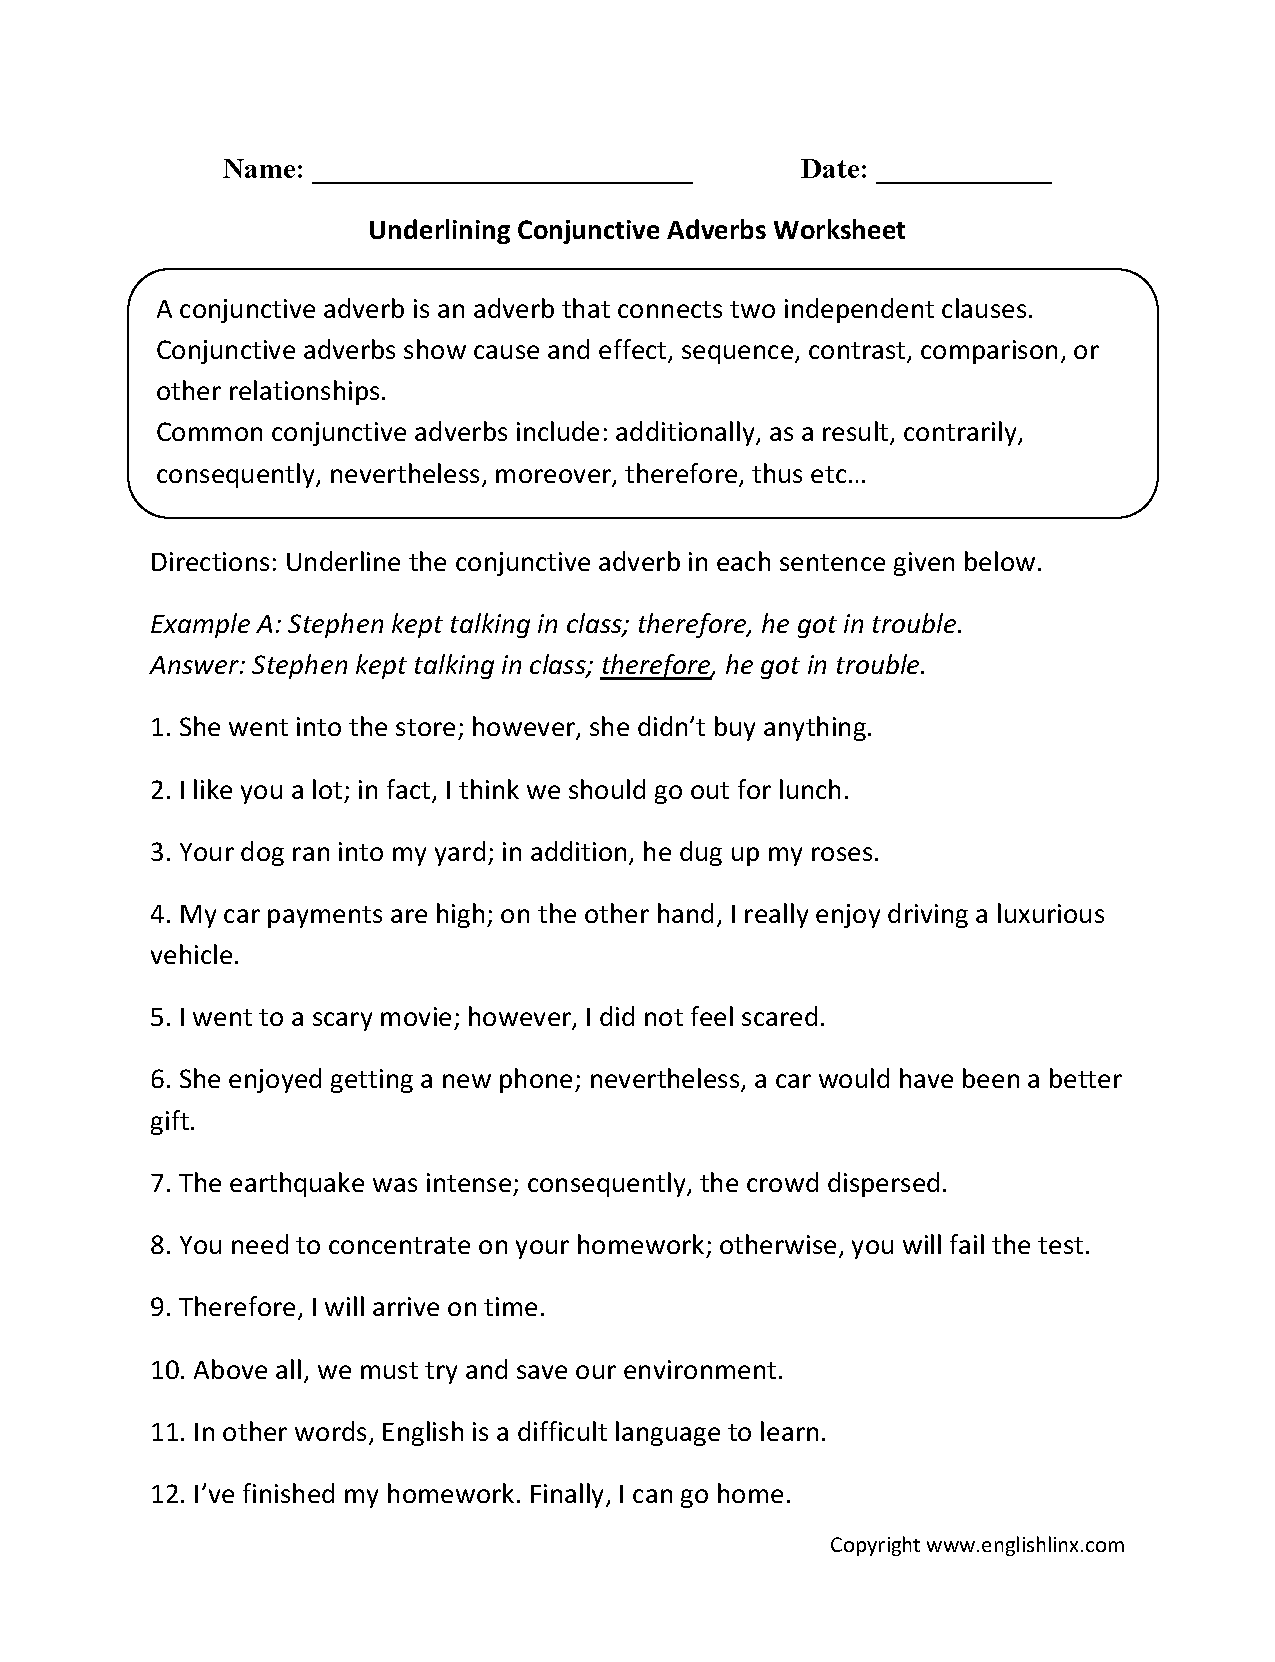 Proatmealus  Marvelous Englishlinxcom  Conjunctions Worksheets With Entrancing Worksheet With Cool Letter Practice Worksheets Also Elementary Worksheets In Addition How To Copy Worksheet In Excel And Living And Nonliving Worksheet As Well As Relative Pronouns Worksheet Additionally Nomenclature Worksheet  From Englishlinxcom With Proatmealus  Entrancing Englishlinxcom  Conjunctions Worksheets With Cool Worksheet And Marvelous Letter Practice Worksheets Also Elementary Worksheets In Addition How To Copy Worksheet In Excel From Englishlinxcom